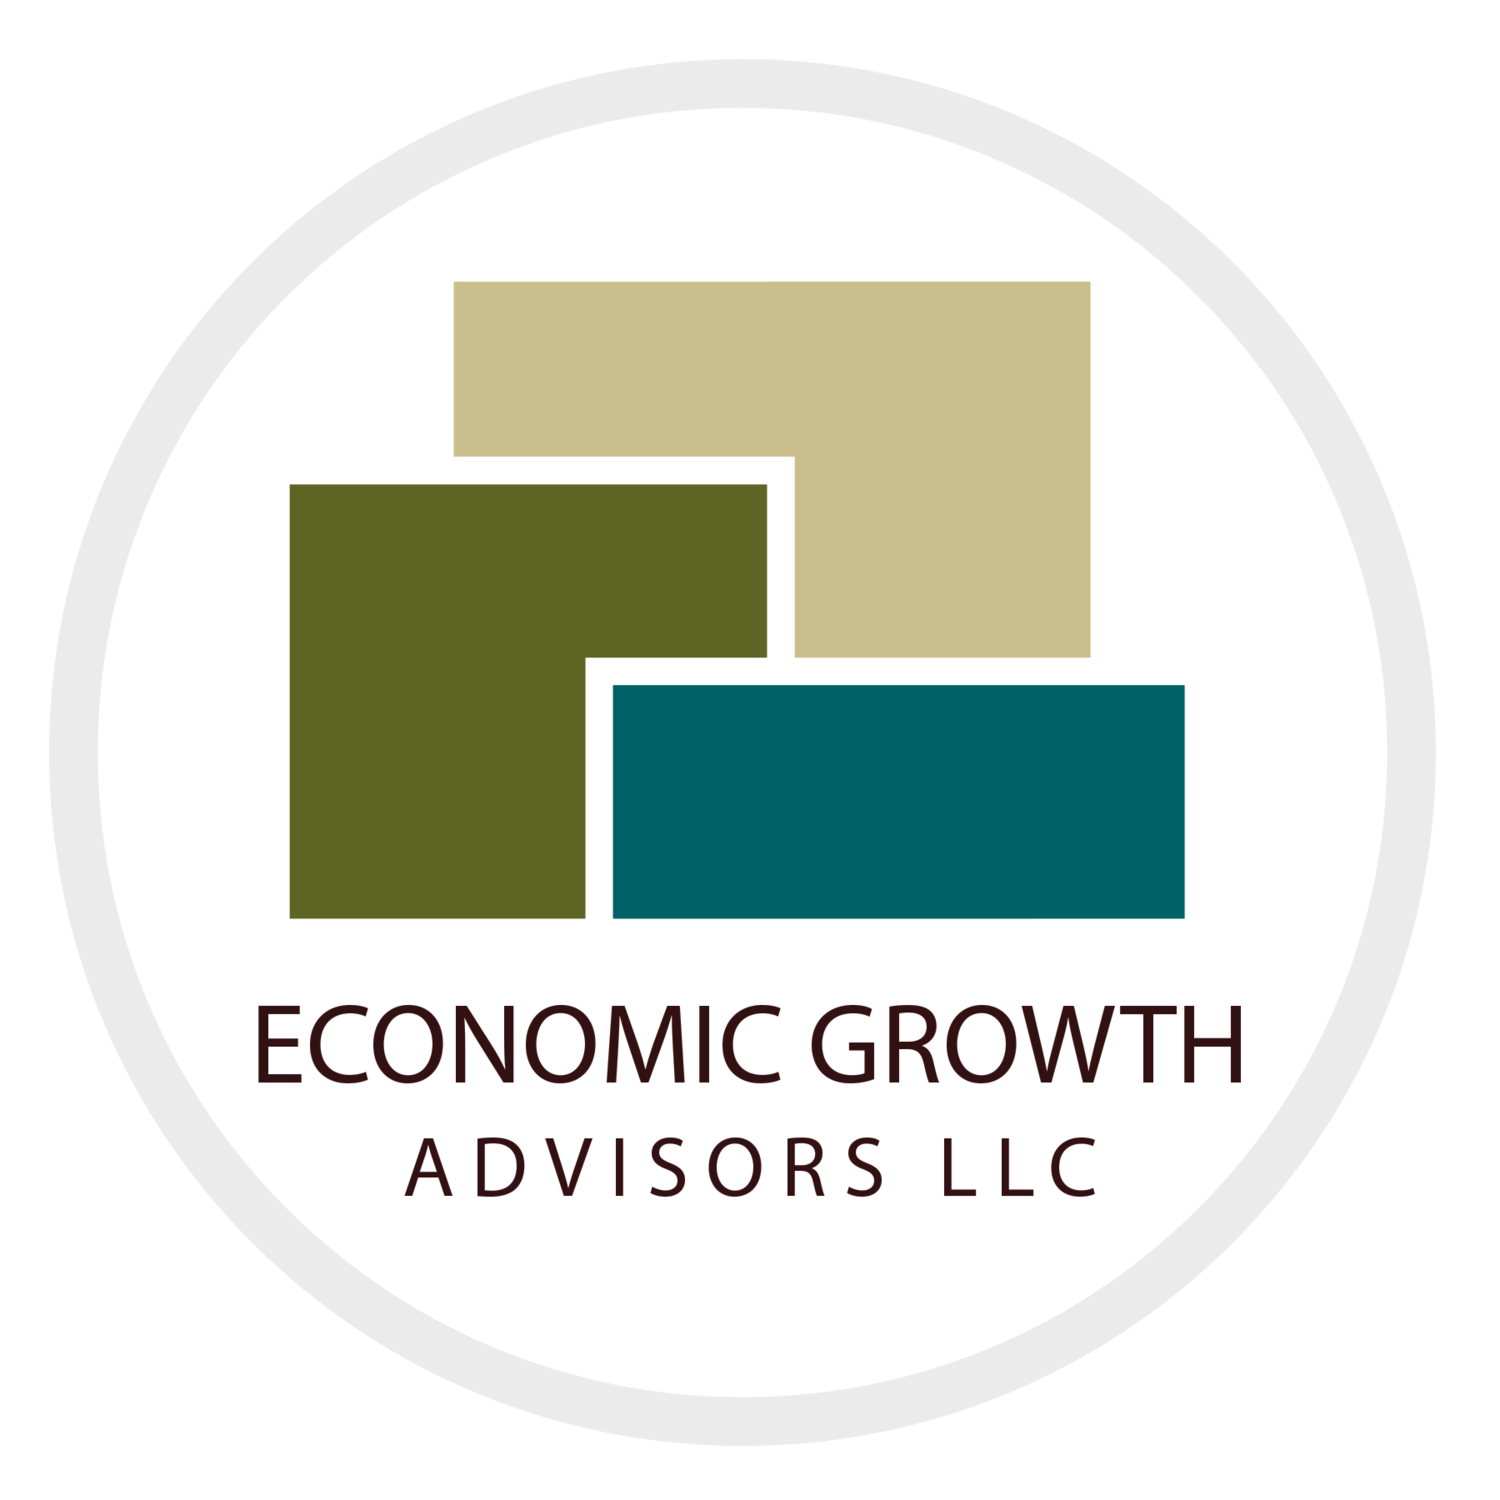 Economic Growth Advisors